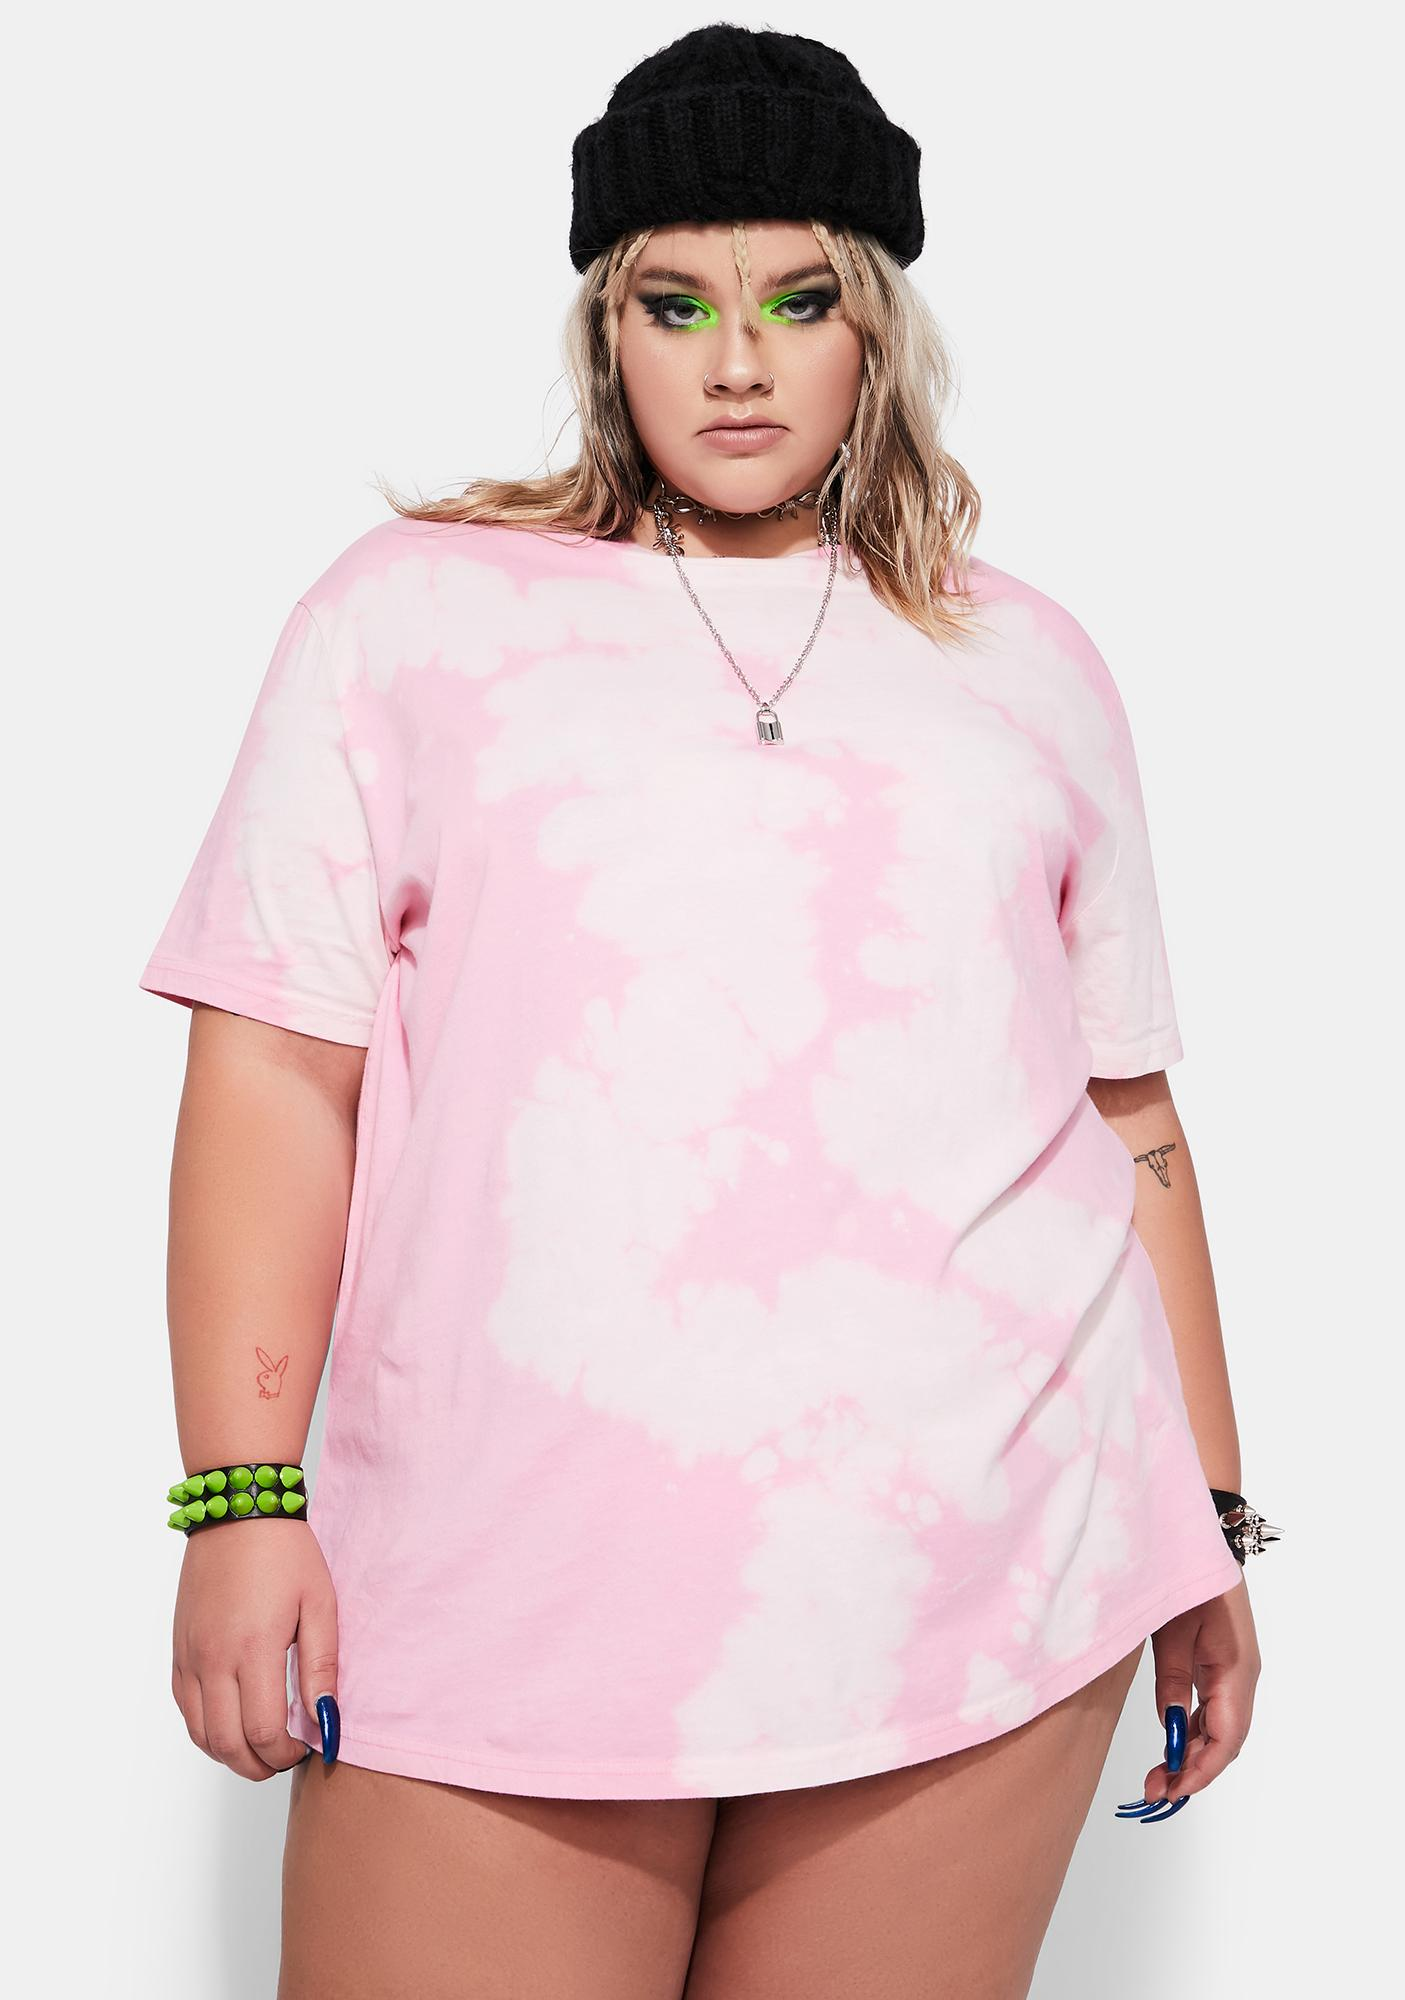 Current Mood Queen Maker Of Madness Oversized Tee